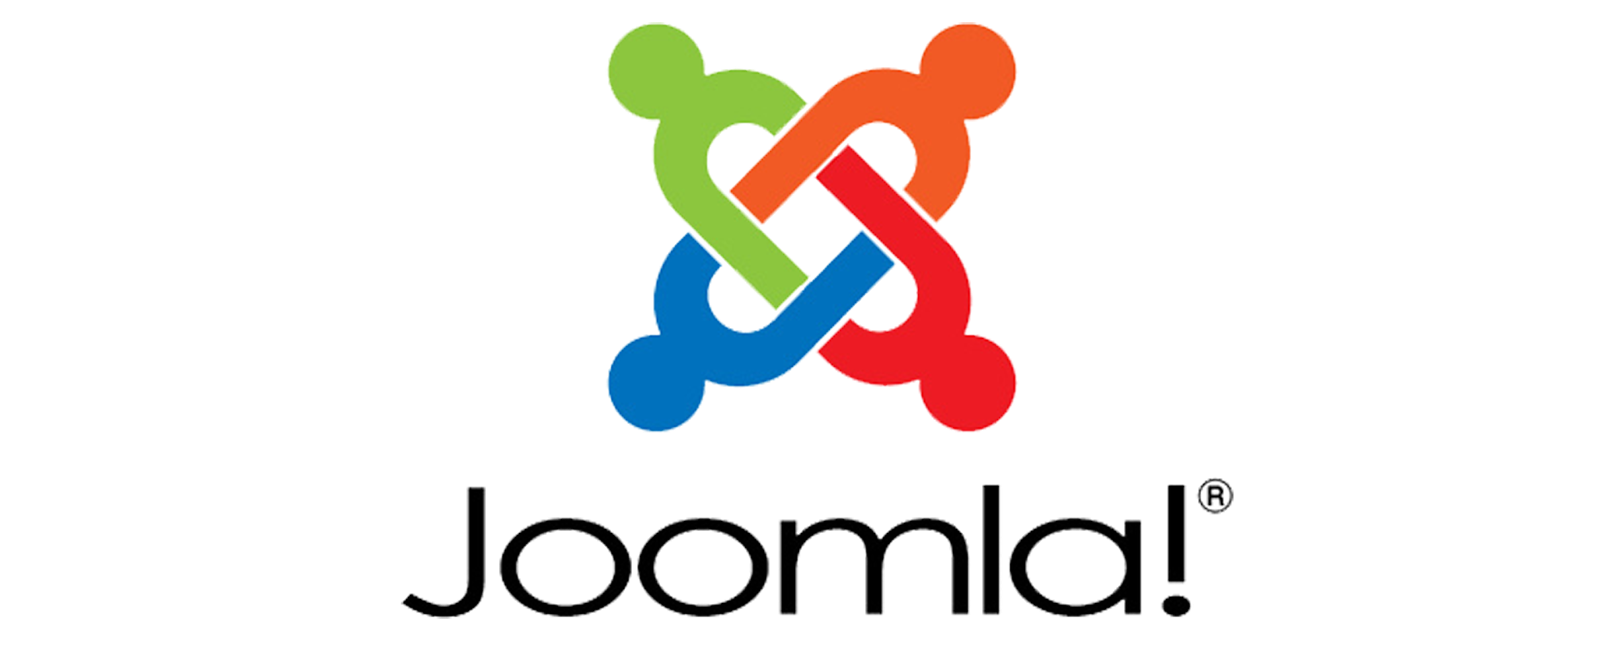 joomla-the-maverick-spirit